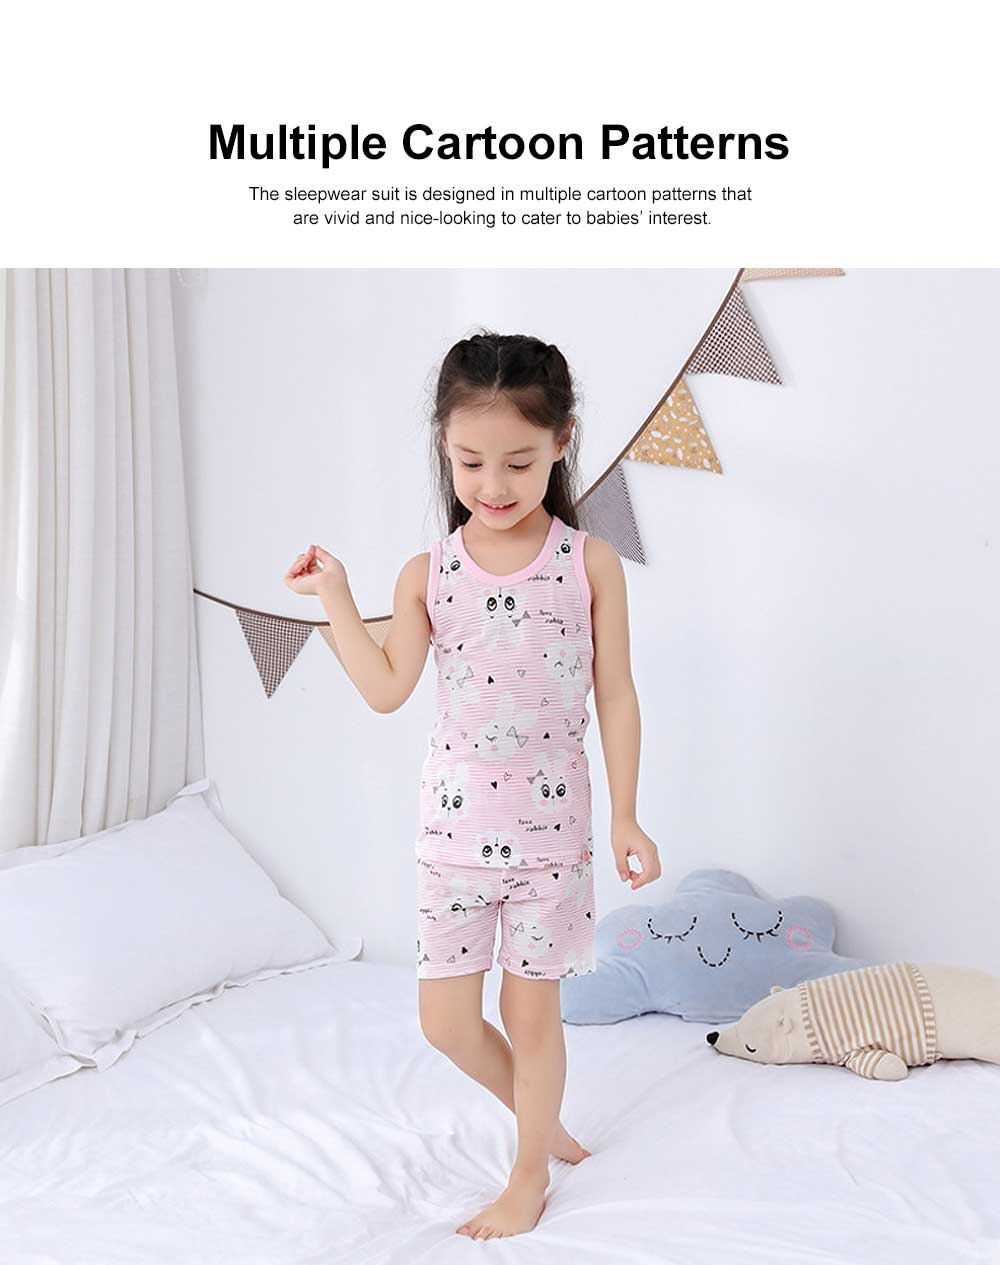 Pure Cotton Sleepwear Suit with Cartoon Patterns for Children, Summer Unisex Loungewear & Pajamas Short Sleeve Underwear Suit for Boys Girls 1